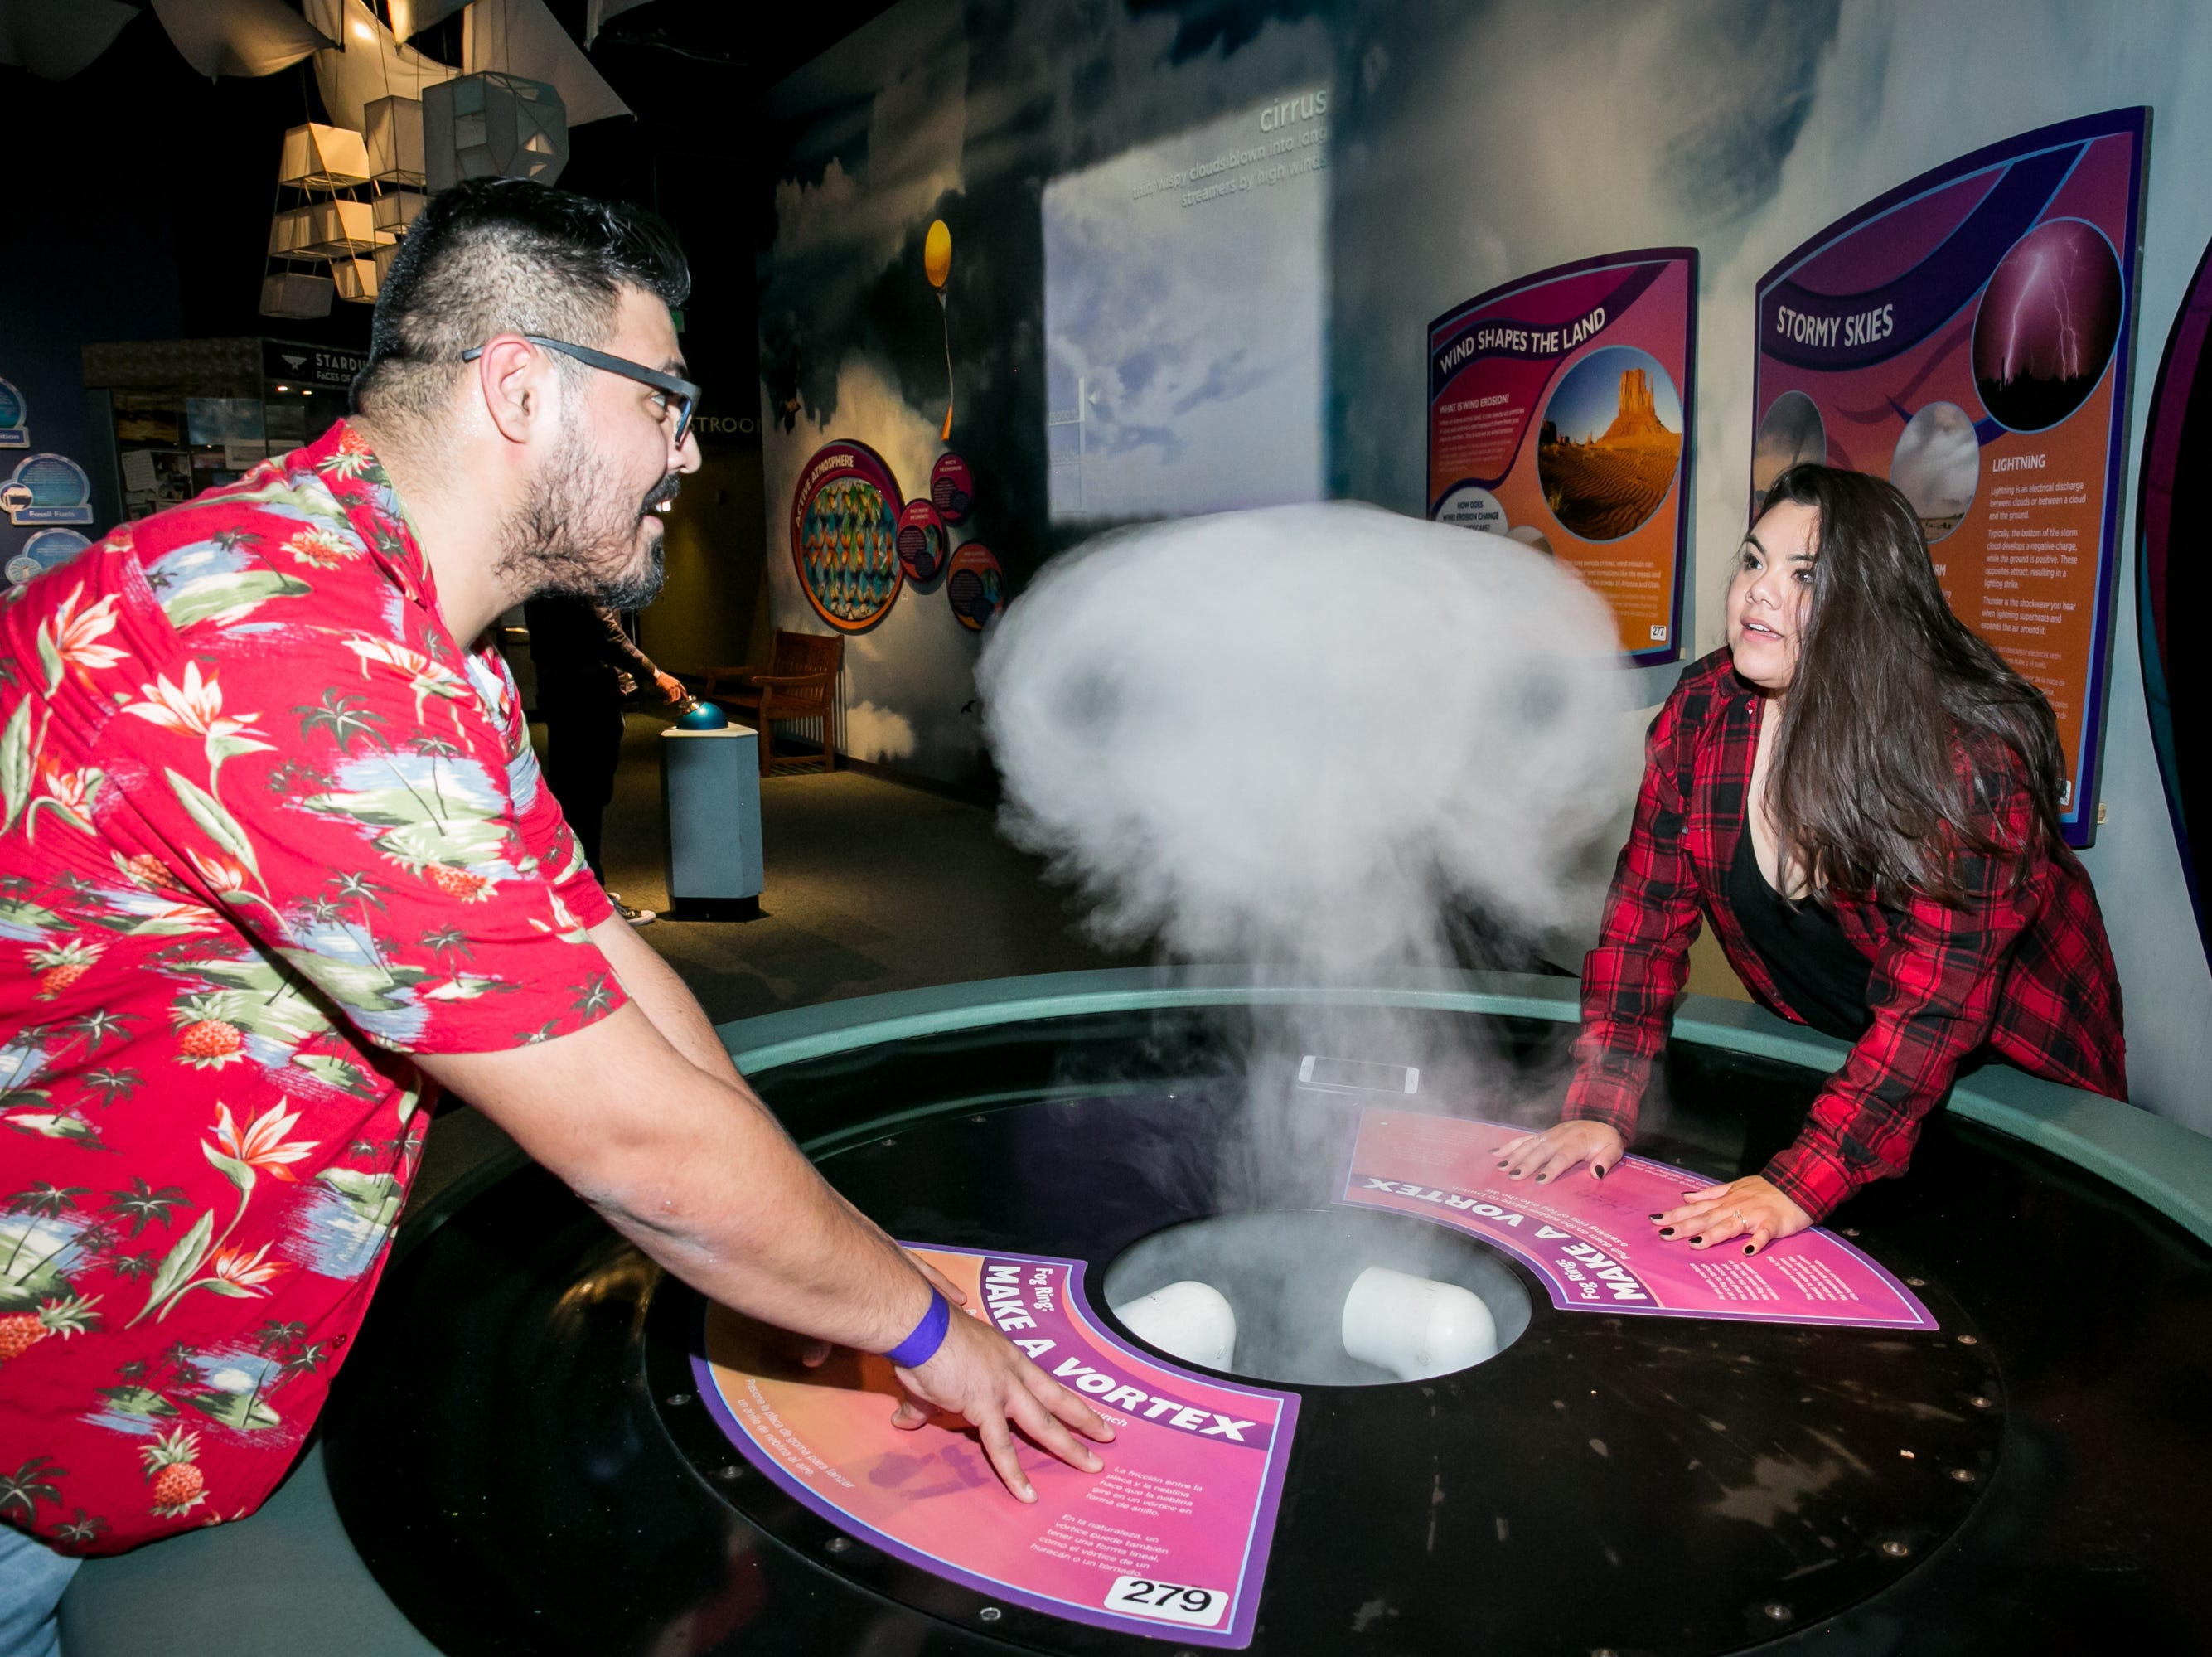 Guests had fun playing with the exhibits during Science With A Twist: Stranger Things at the Arizona Science Center on Friday, October 19, 2018.